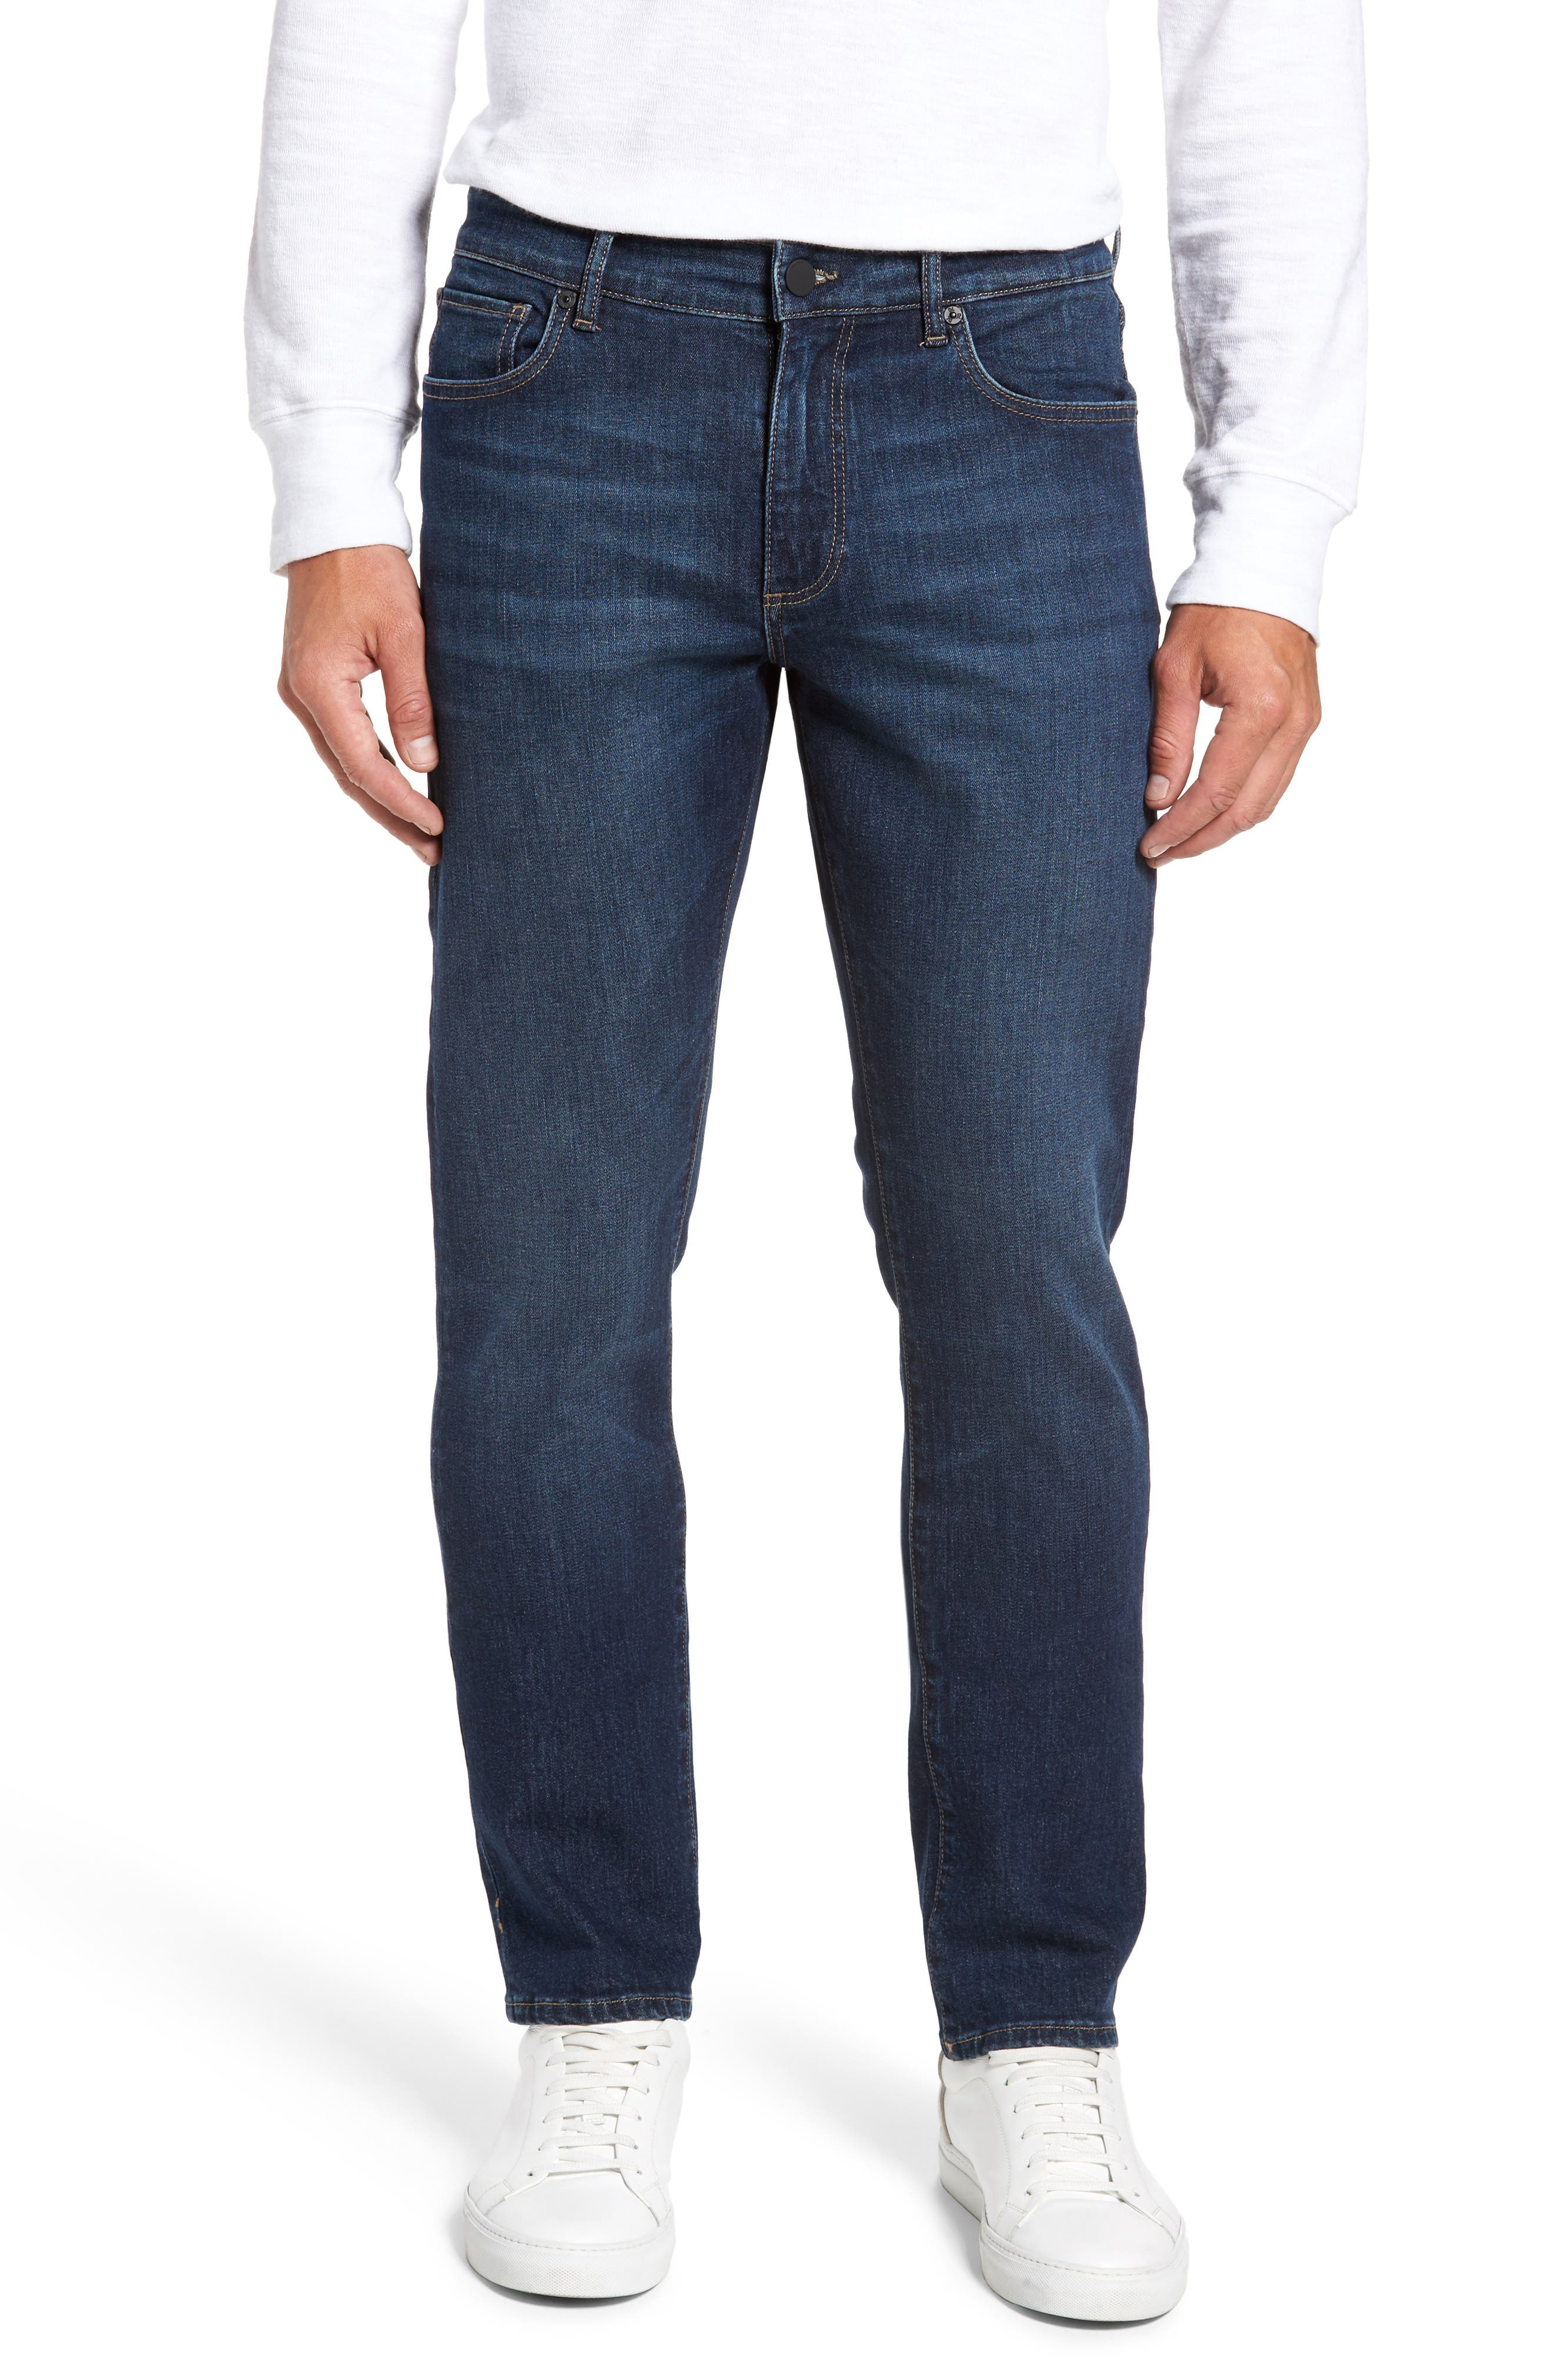 Russell Slim Straight Leg Jeans,                             Main thumbnail 1, color,                             Marine